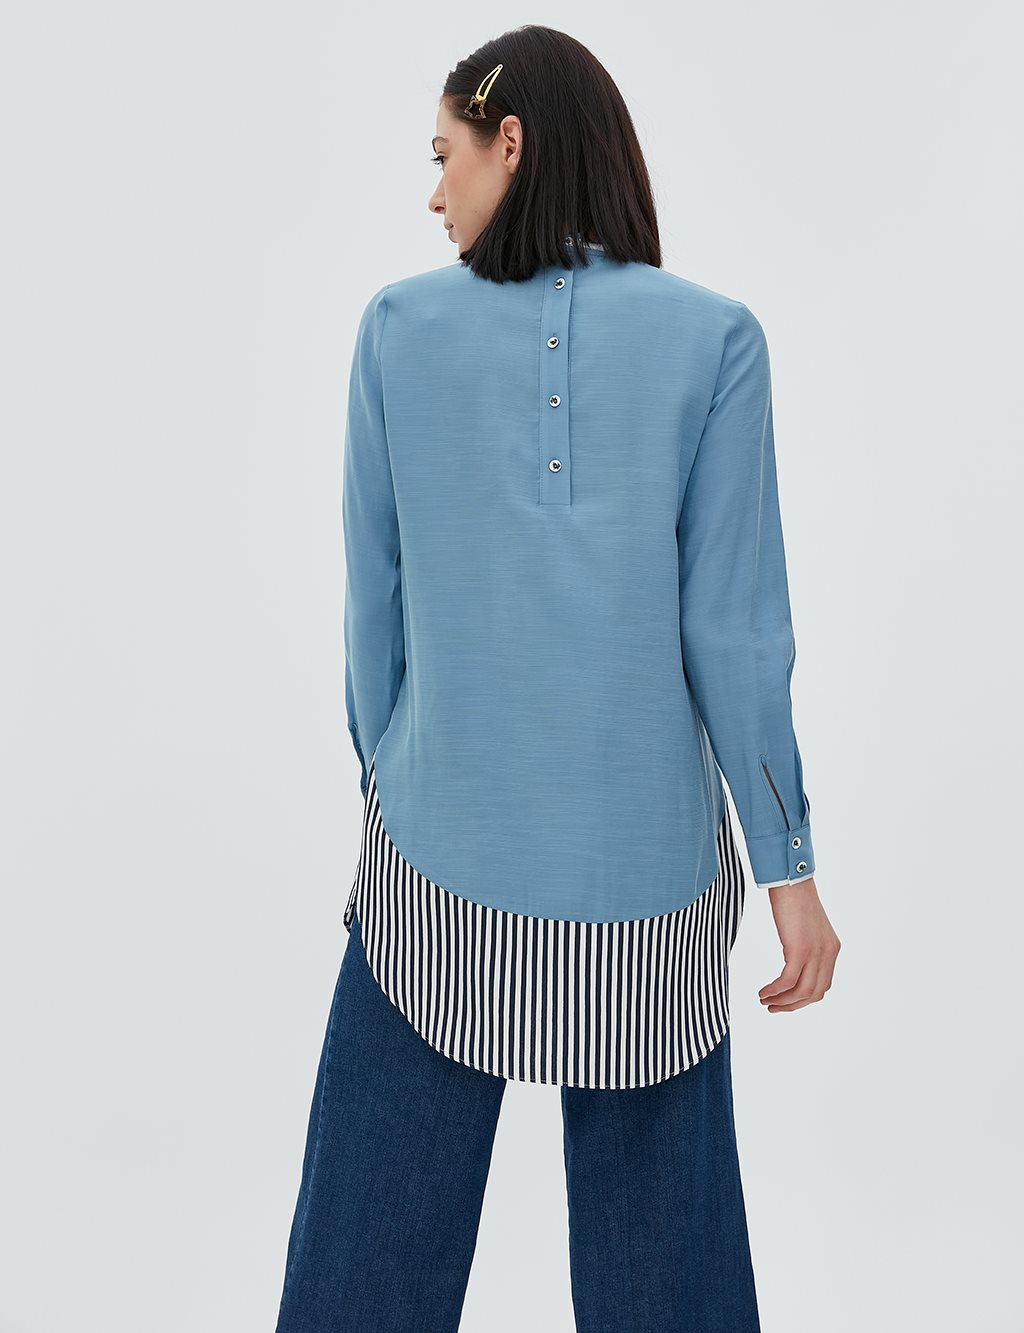 Tunic With Striped Piece B20 21023 Blue